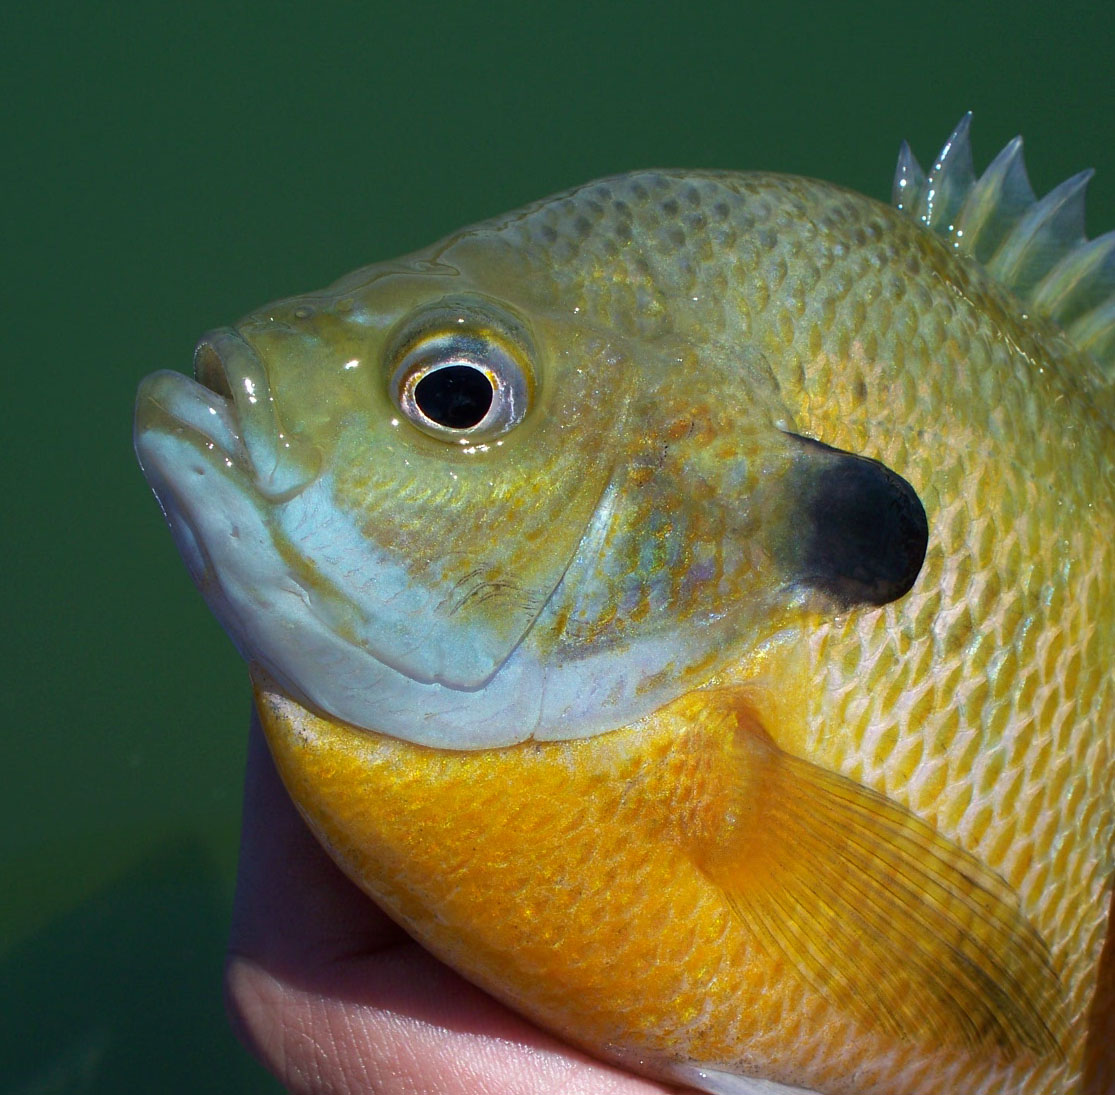 catching large bluegill on flies for their size the large bluegill ...